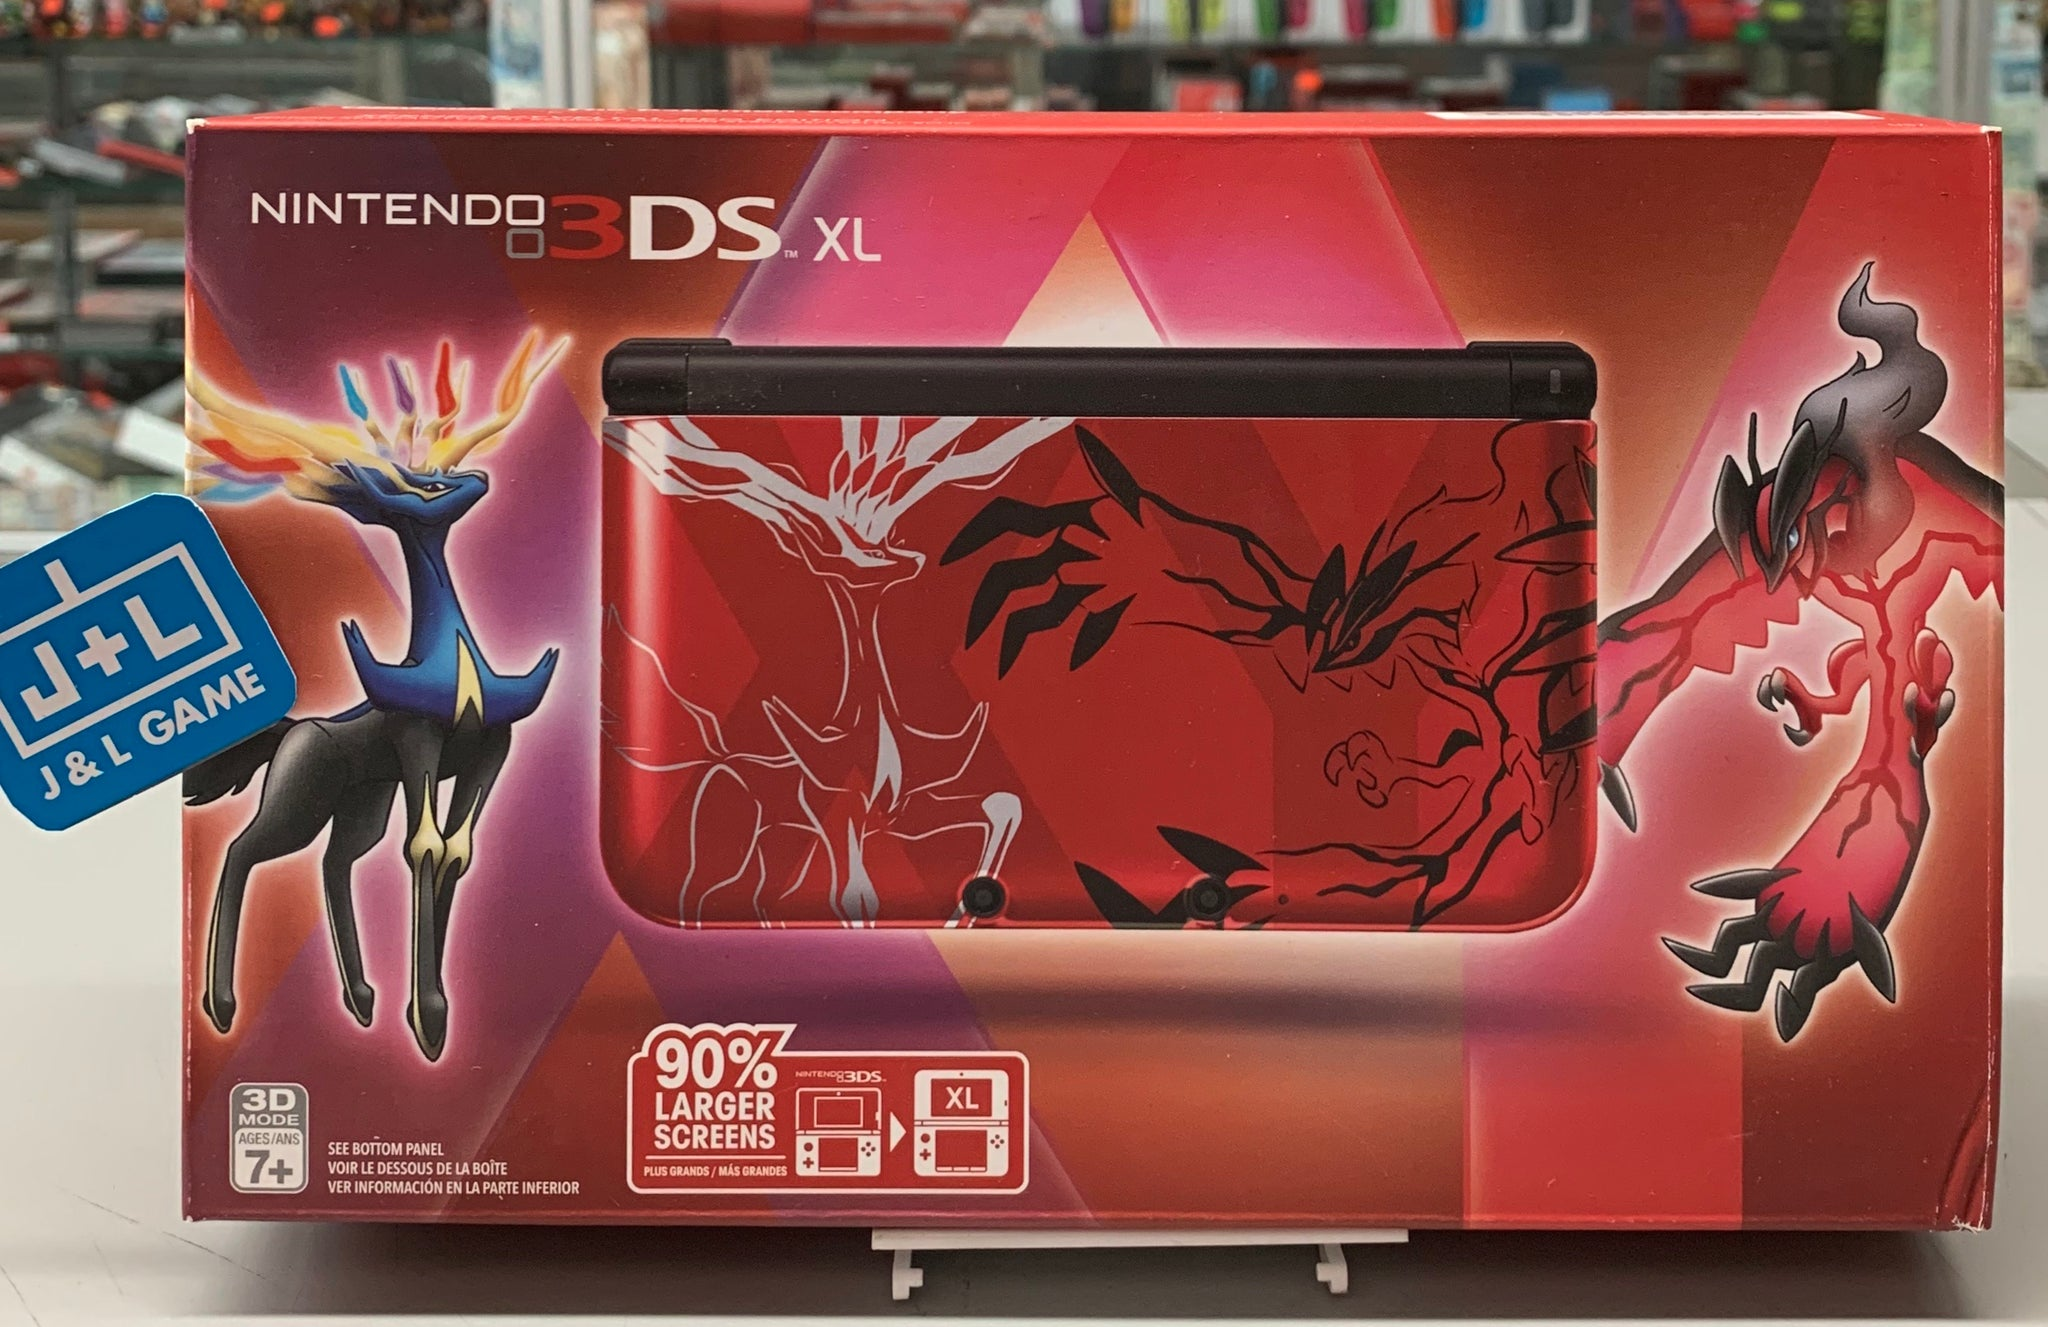 Nintendo Pokémon X & Y Limited Edition 3 DS XL (Red) - Nintendo 3DS-1